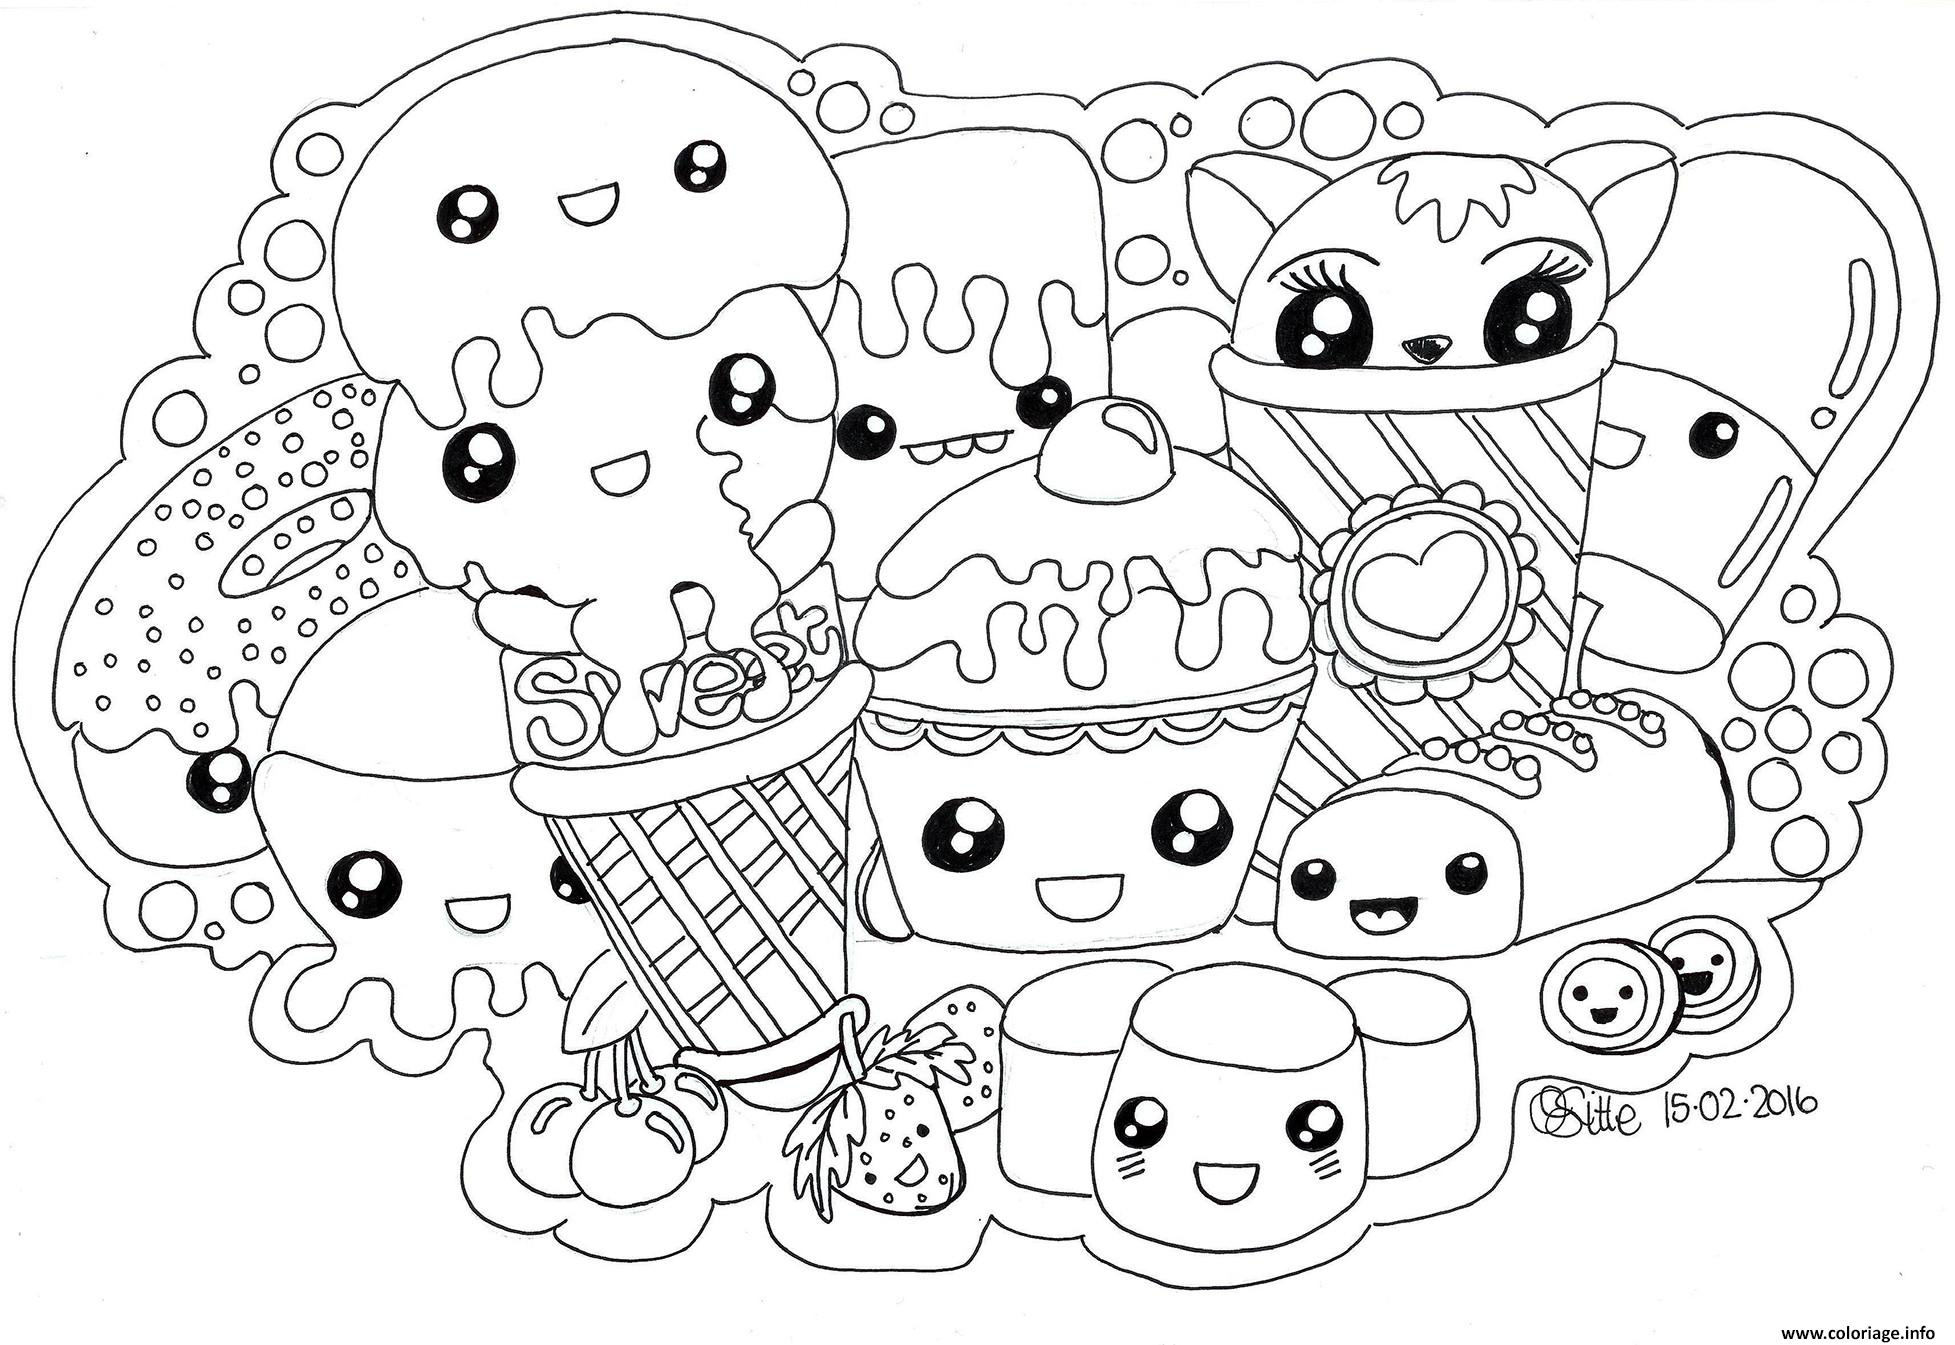 Coloriage Kawaii Sweets Colour Manga Cute Dessin